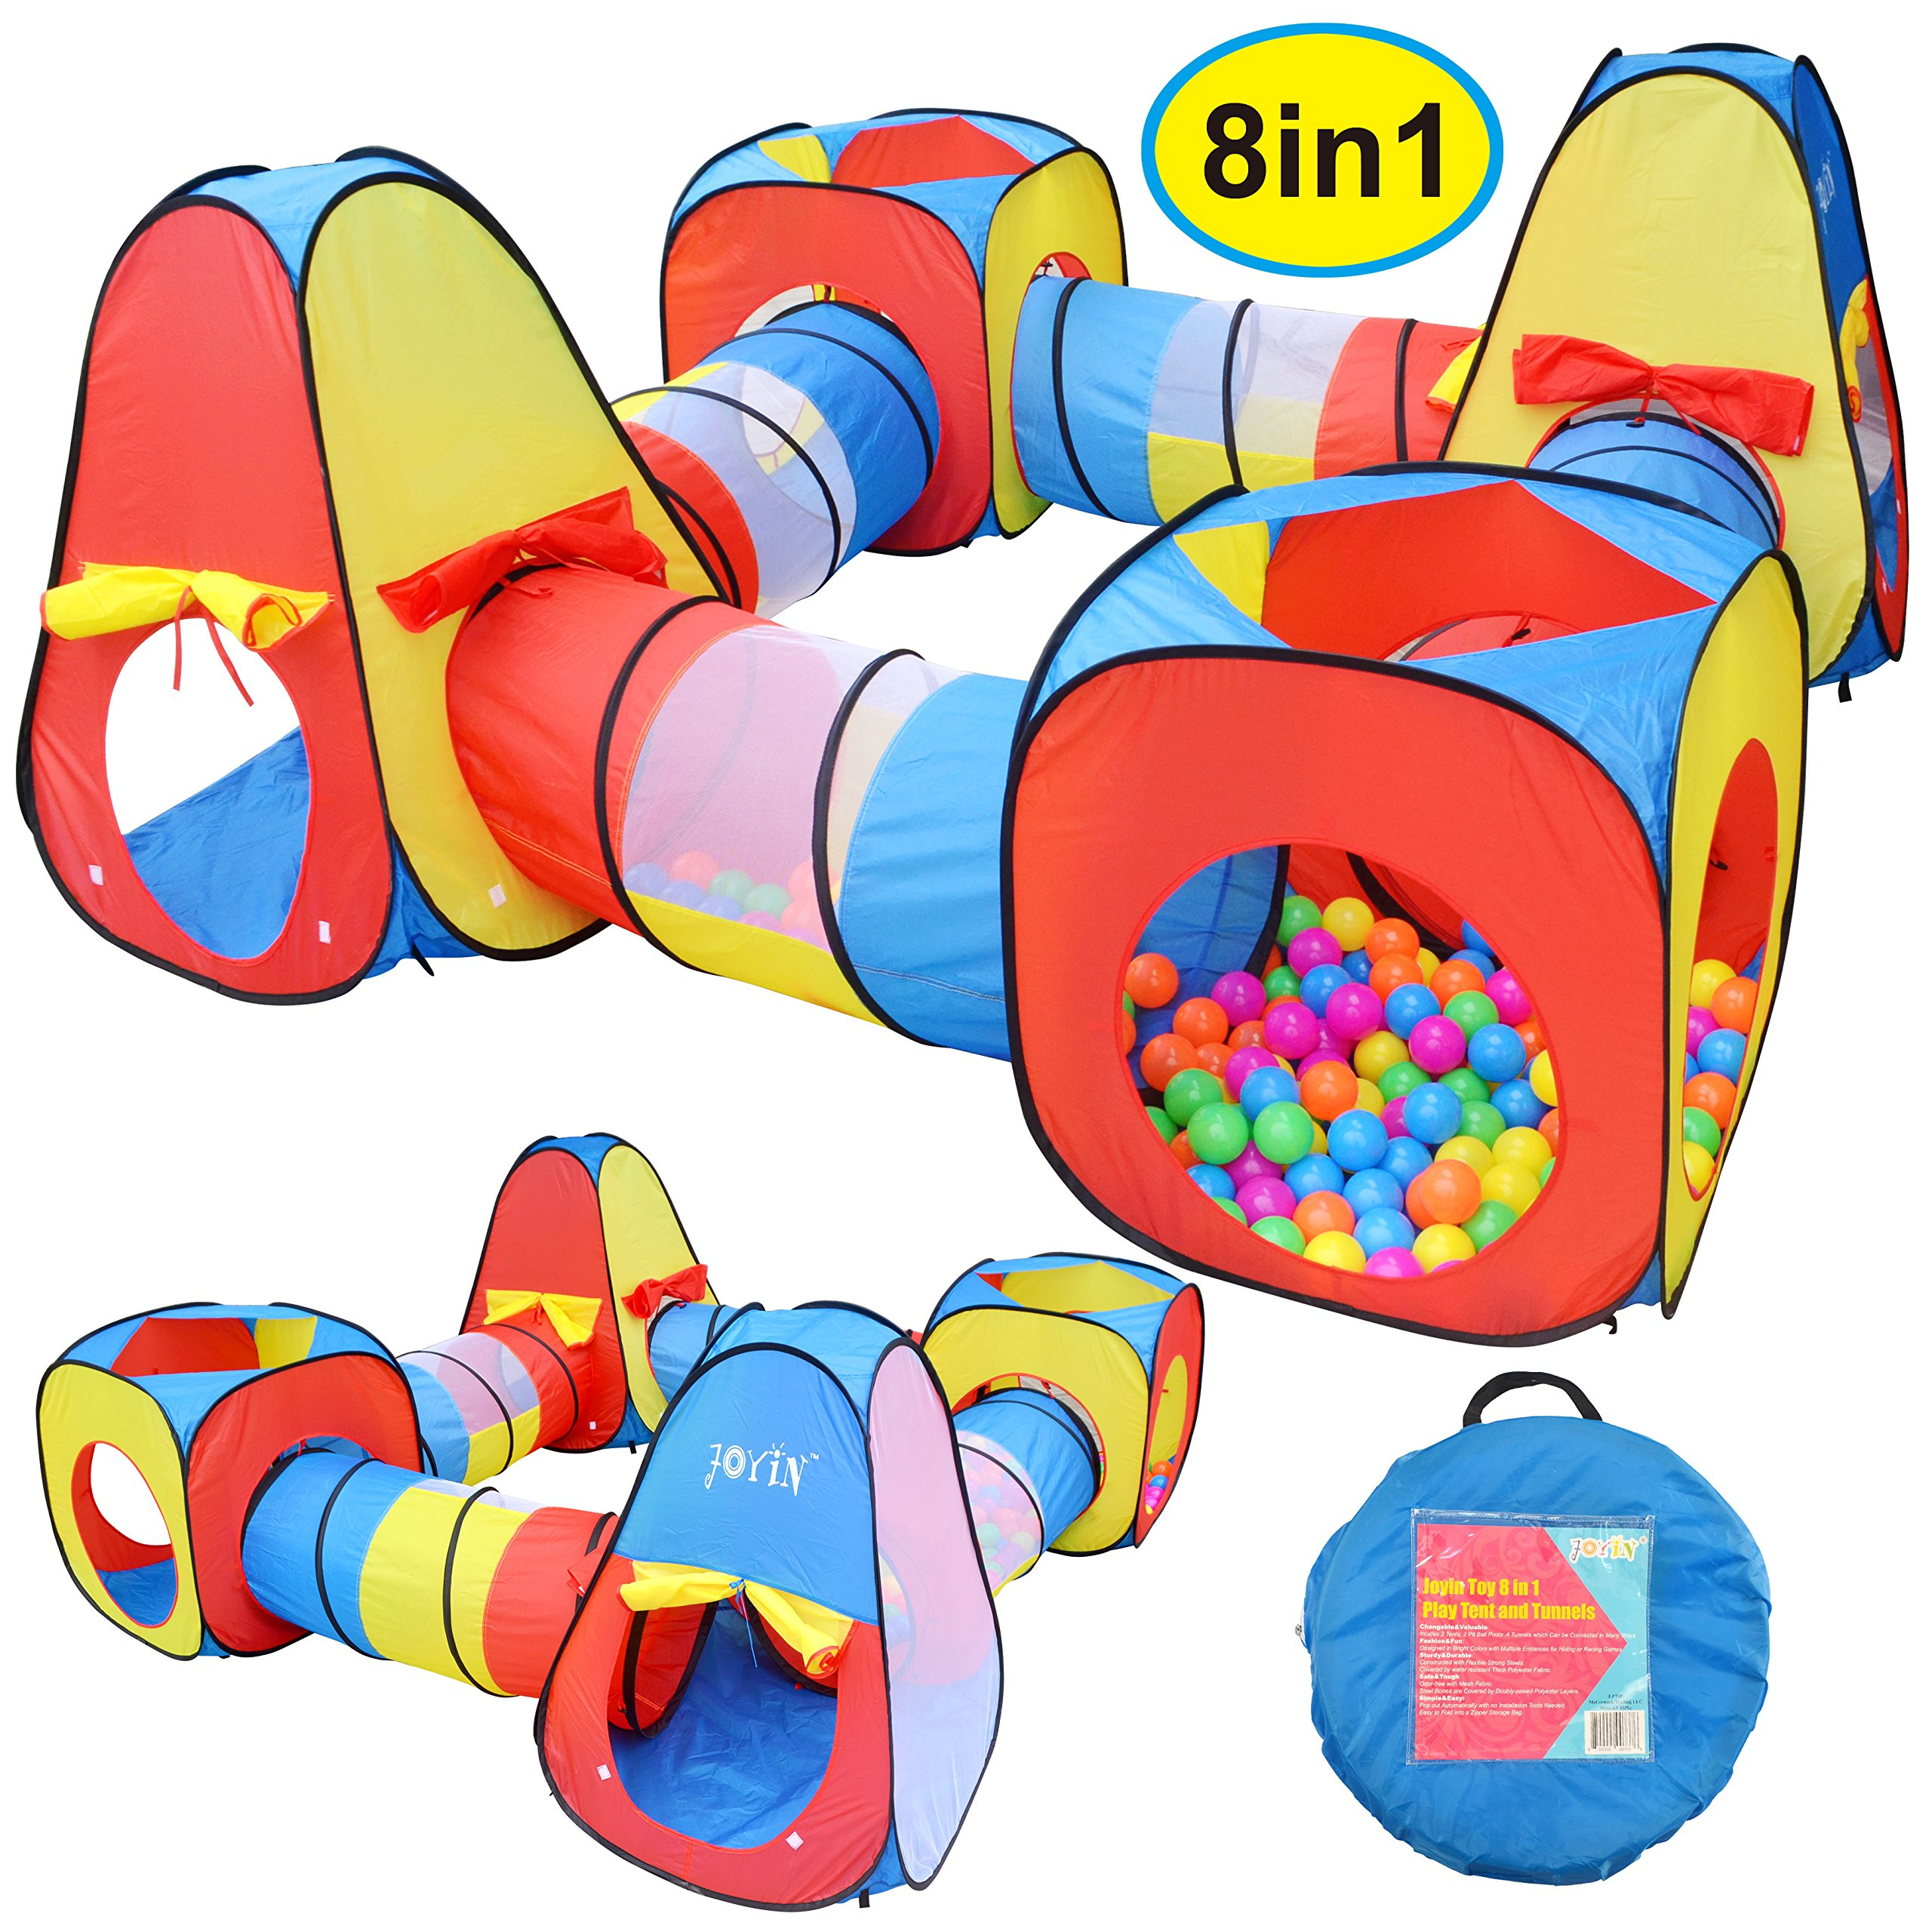 Joyin Toy 8 in 1 Pop-up Play Tent Tunnel Including 4 Kids Play Tunnels 2 Cubic Tents and 2 Triangle Tents Perfect for Ball Pit Playing  sc 1 st  eBay & Joyin Toy 8 in 1 Pop-up Play Tent Tunnel Including 4 Kids Play ...